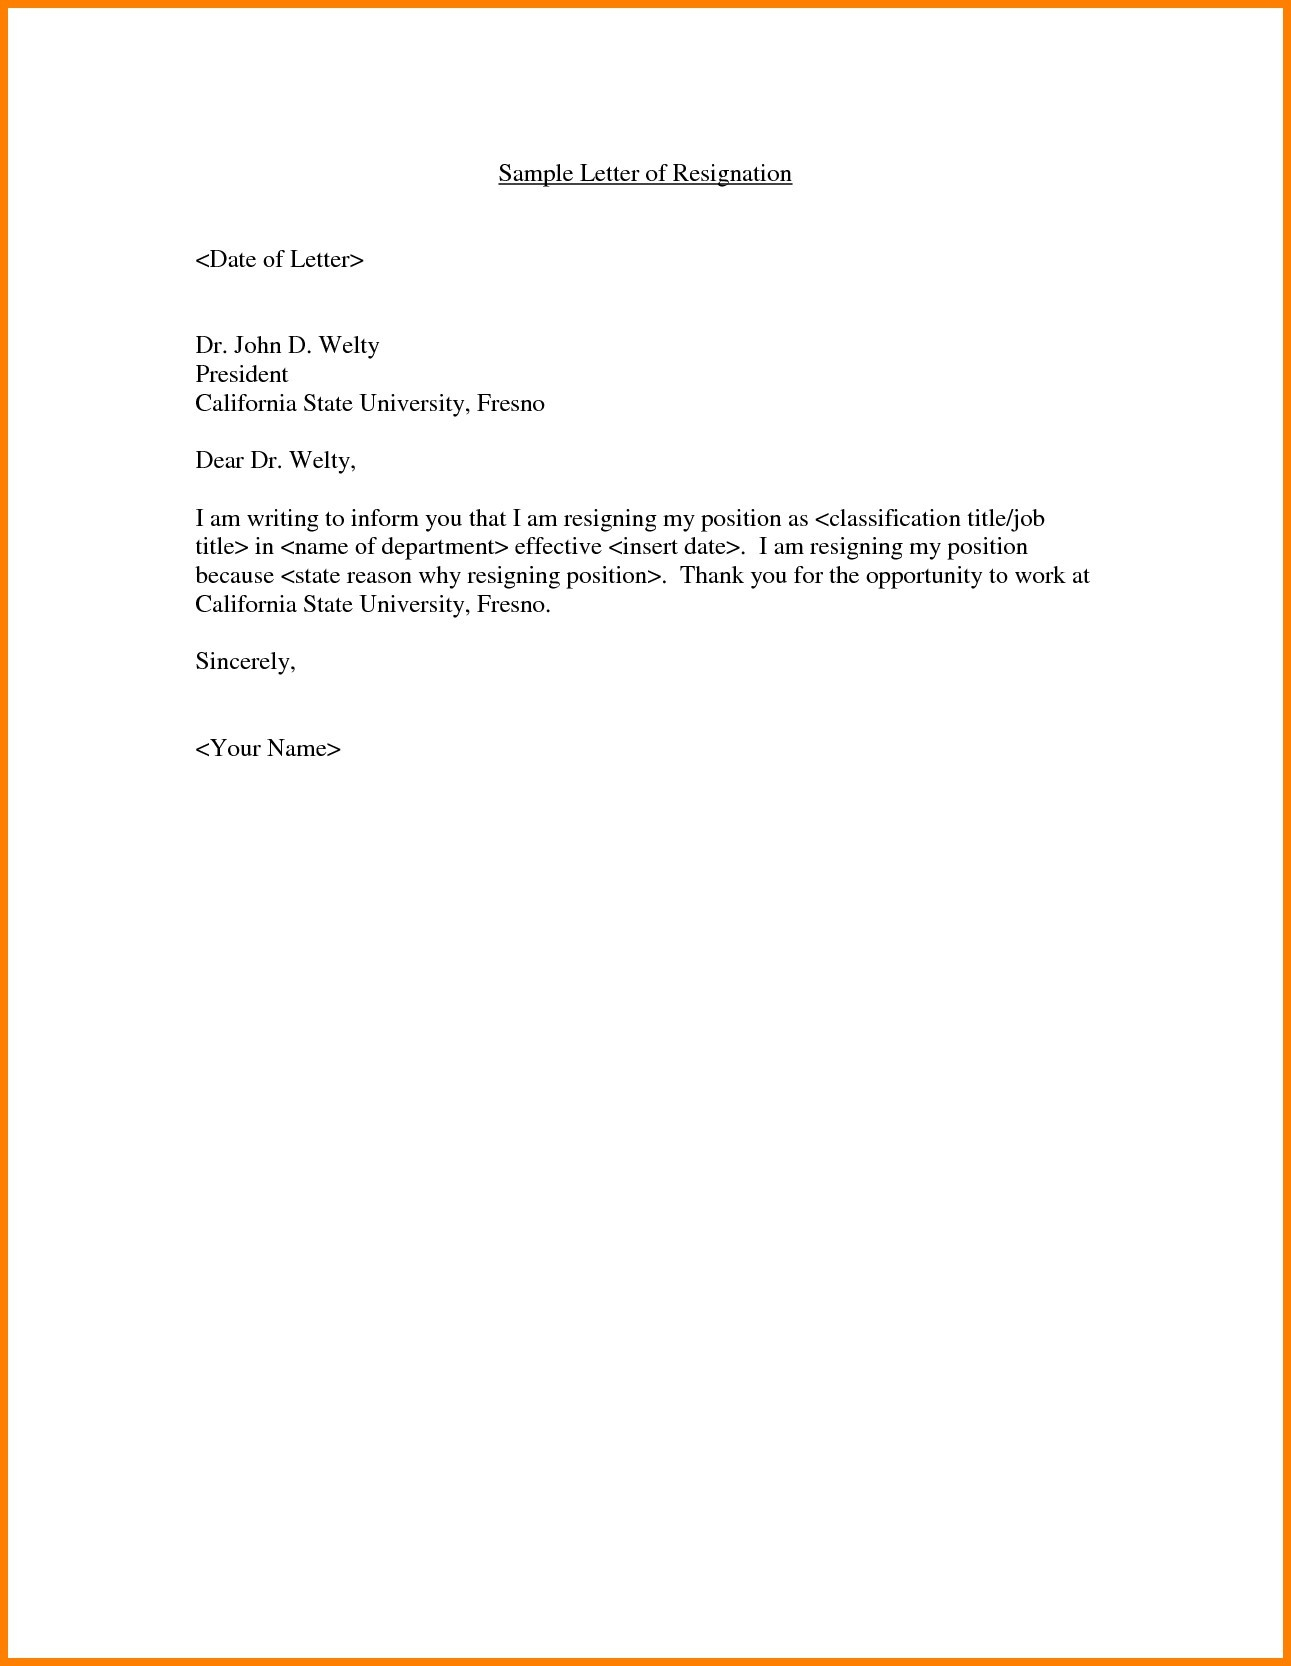 Resignation Letter Template Doc - Employment Fer Letter Template Doc Copy Resignation Letter Sample